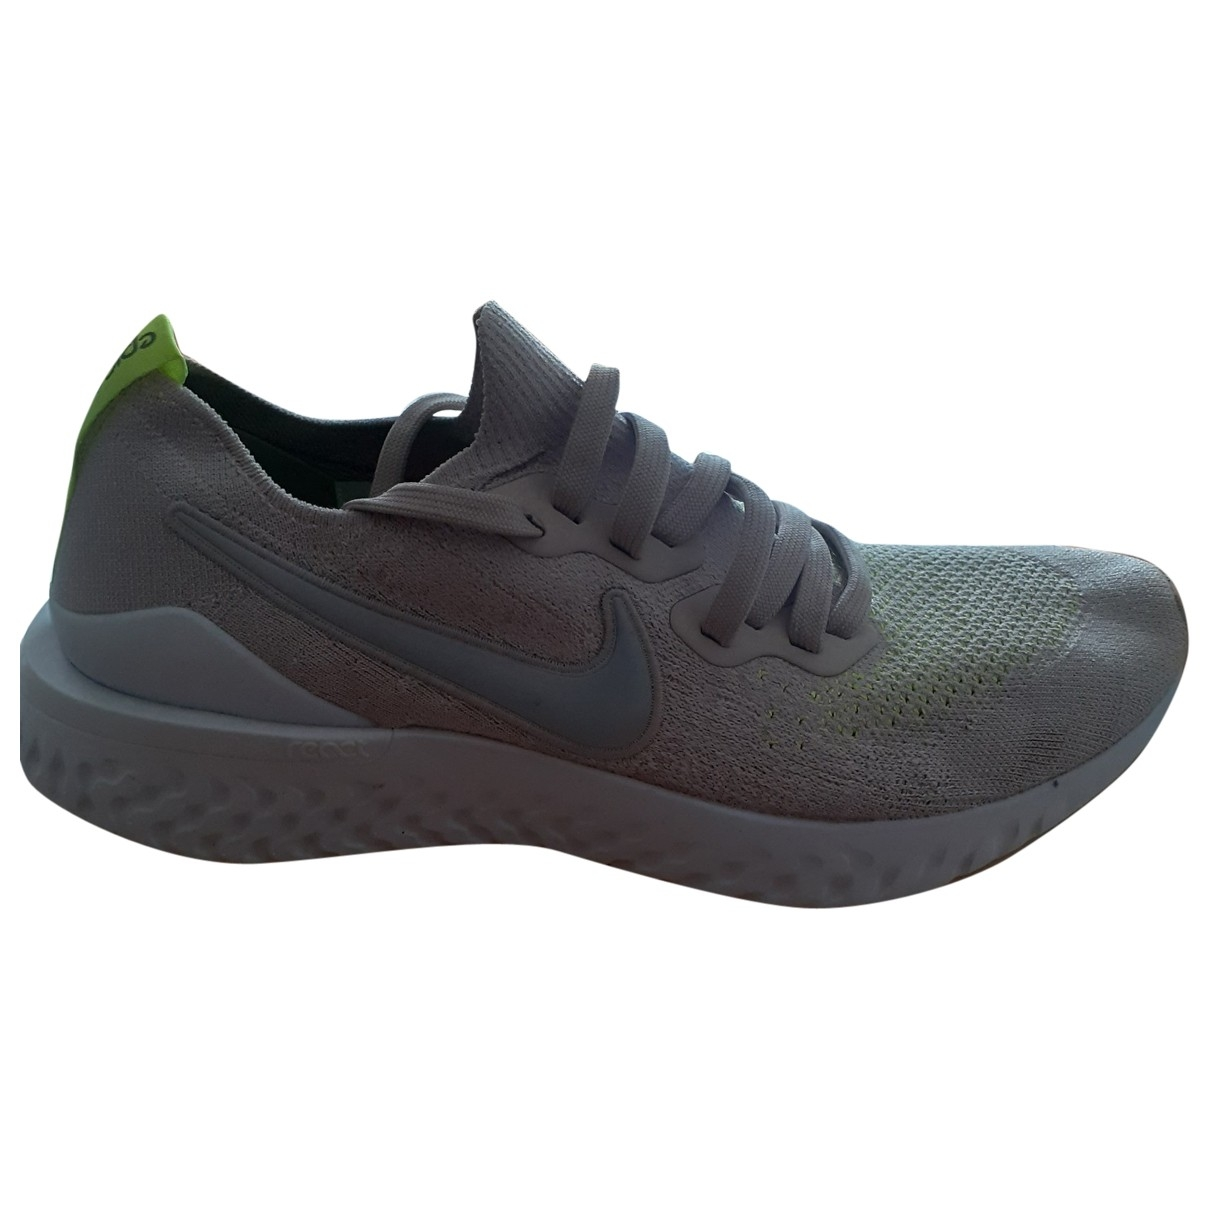 Nike Epic React Beige Cloth Trainers for Men 8.5 UK